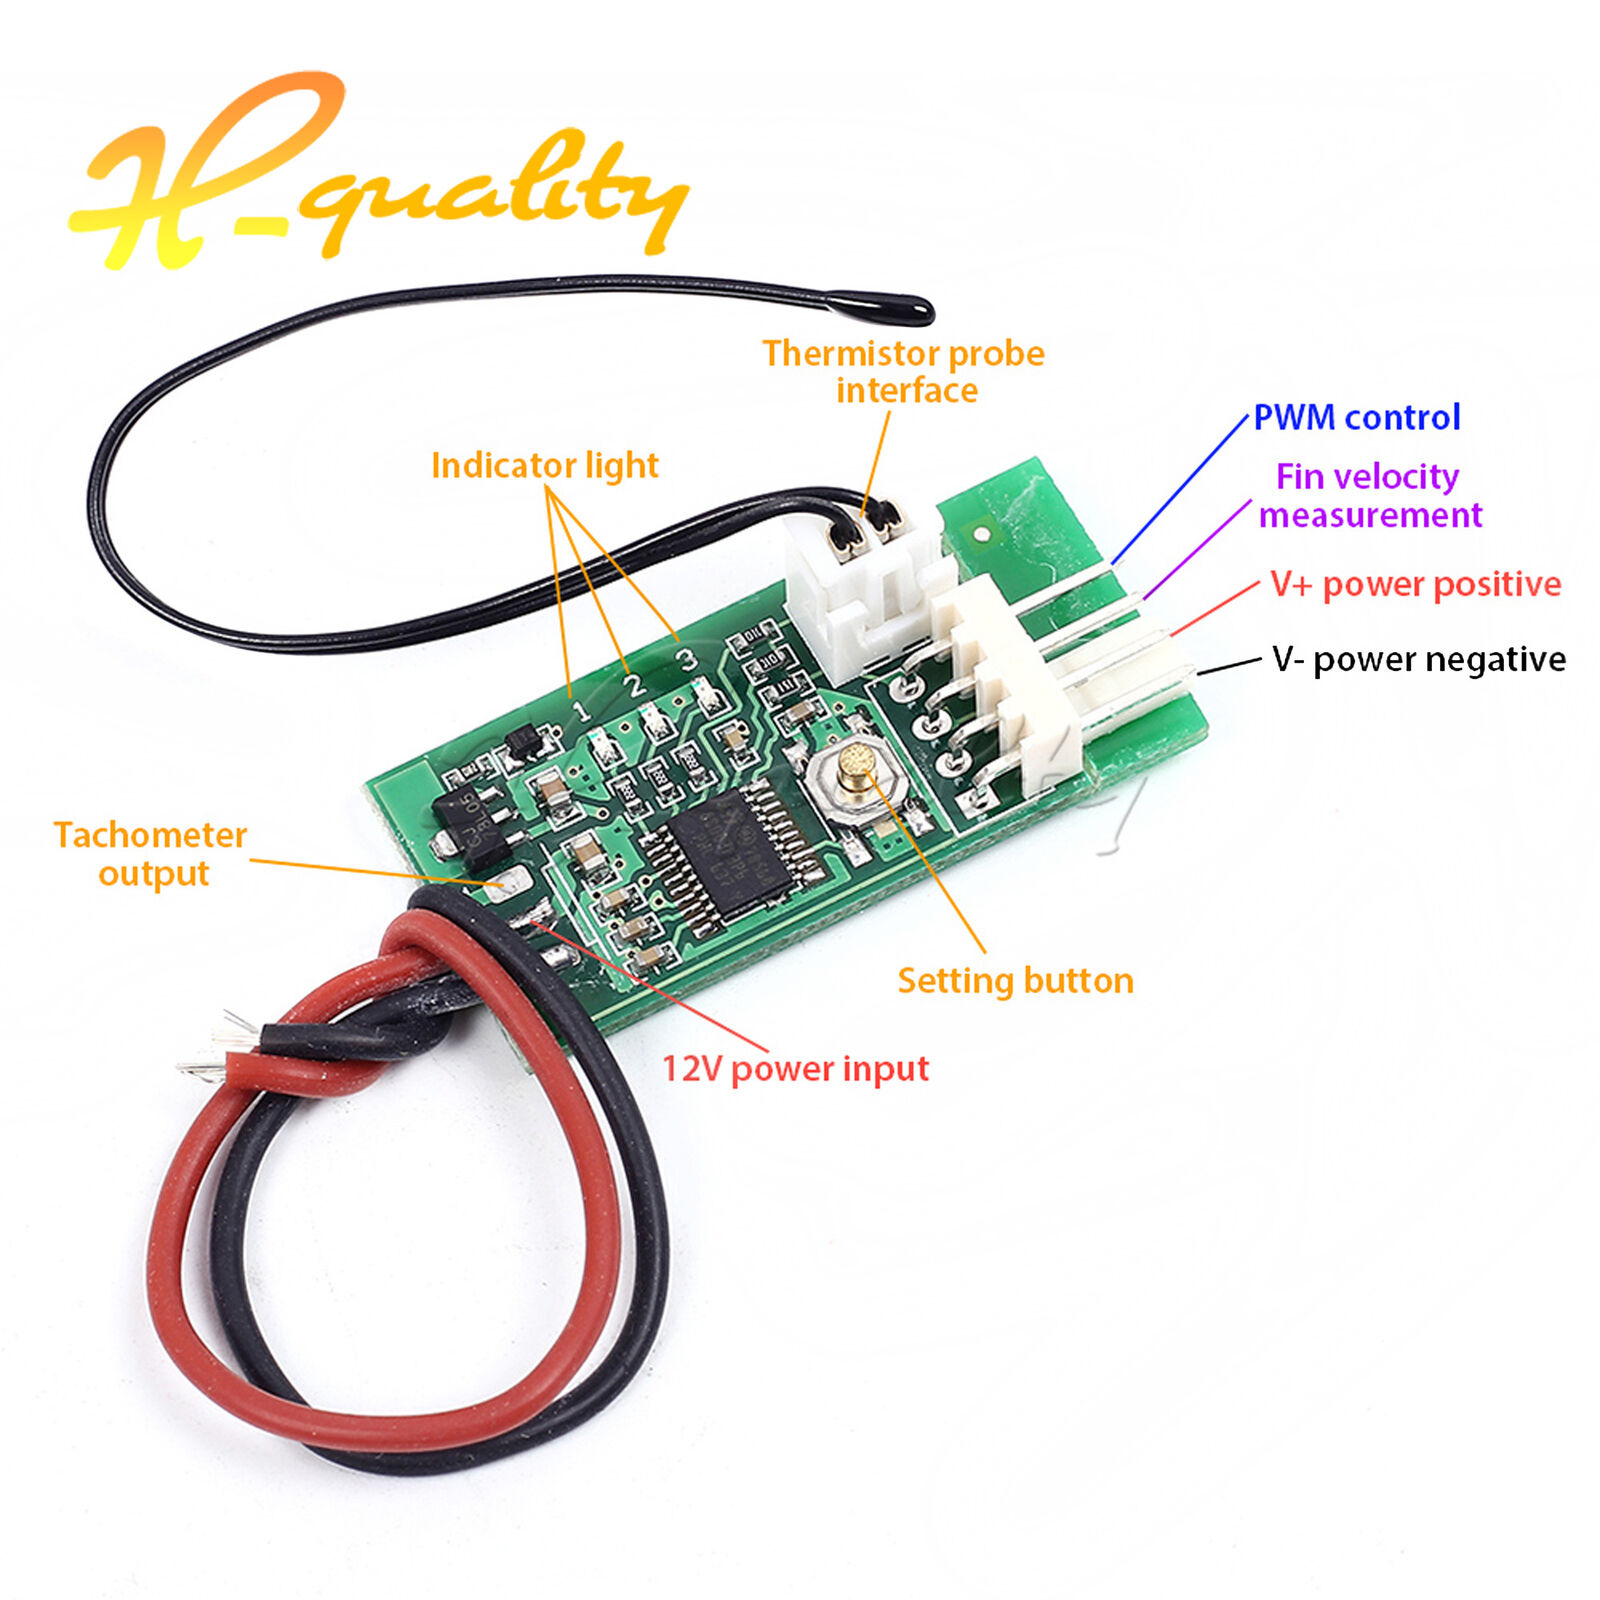 Dc12v Pwm 4 Wire Fan Temperature Speed Controller With Foxconn 12v Diagram 1 Of 7only 5 Available